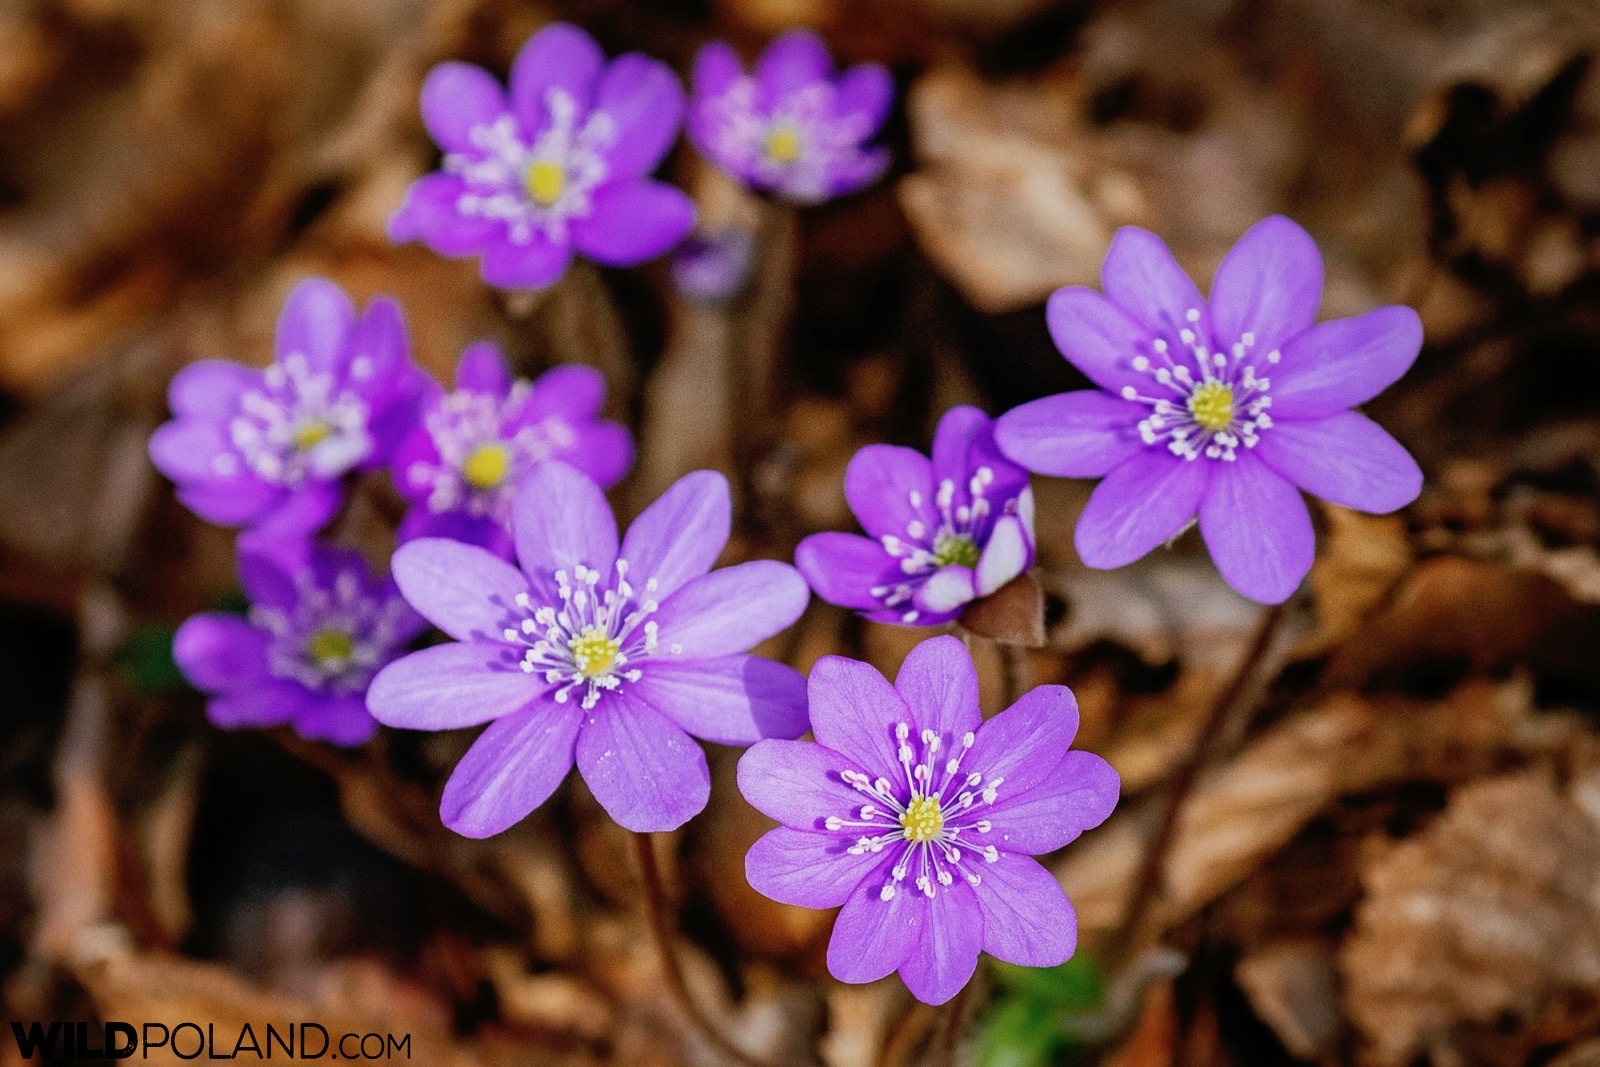 Hepatica - one of the earliers flowers to bloom in the Białowieża Forest (photo by Scott & Rosemary Gilbertson)